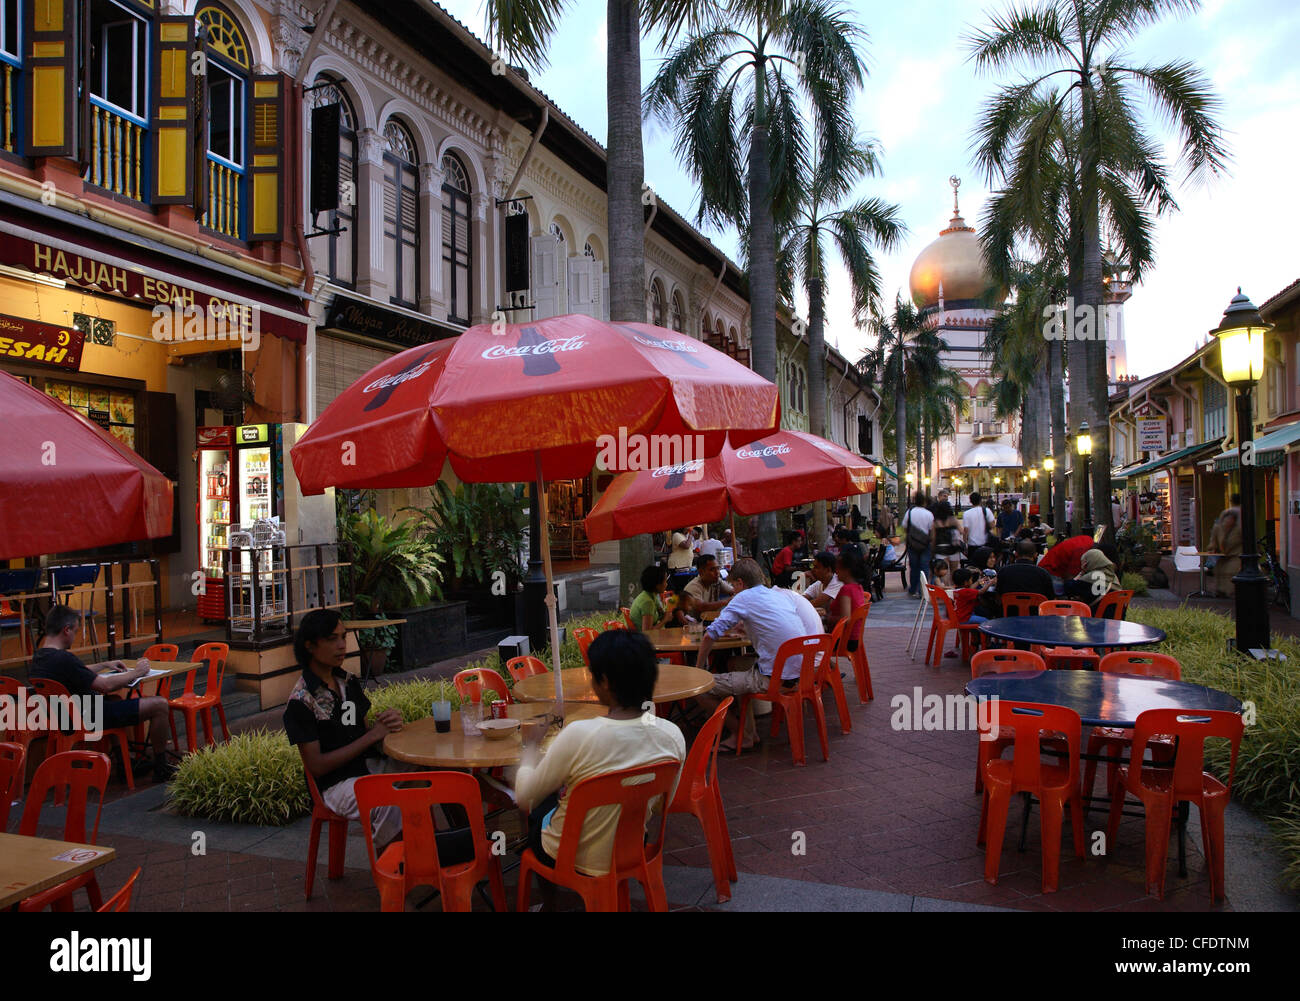 Kampung Glam is a lively area at night, Singapore, Southeast Asia, Asia - Stock Image